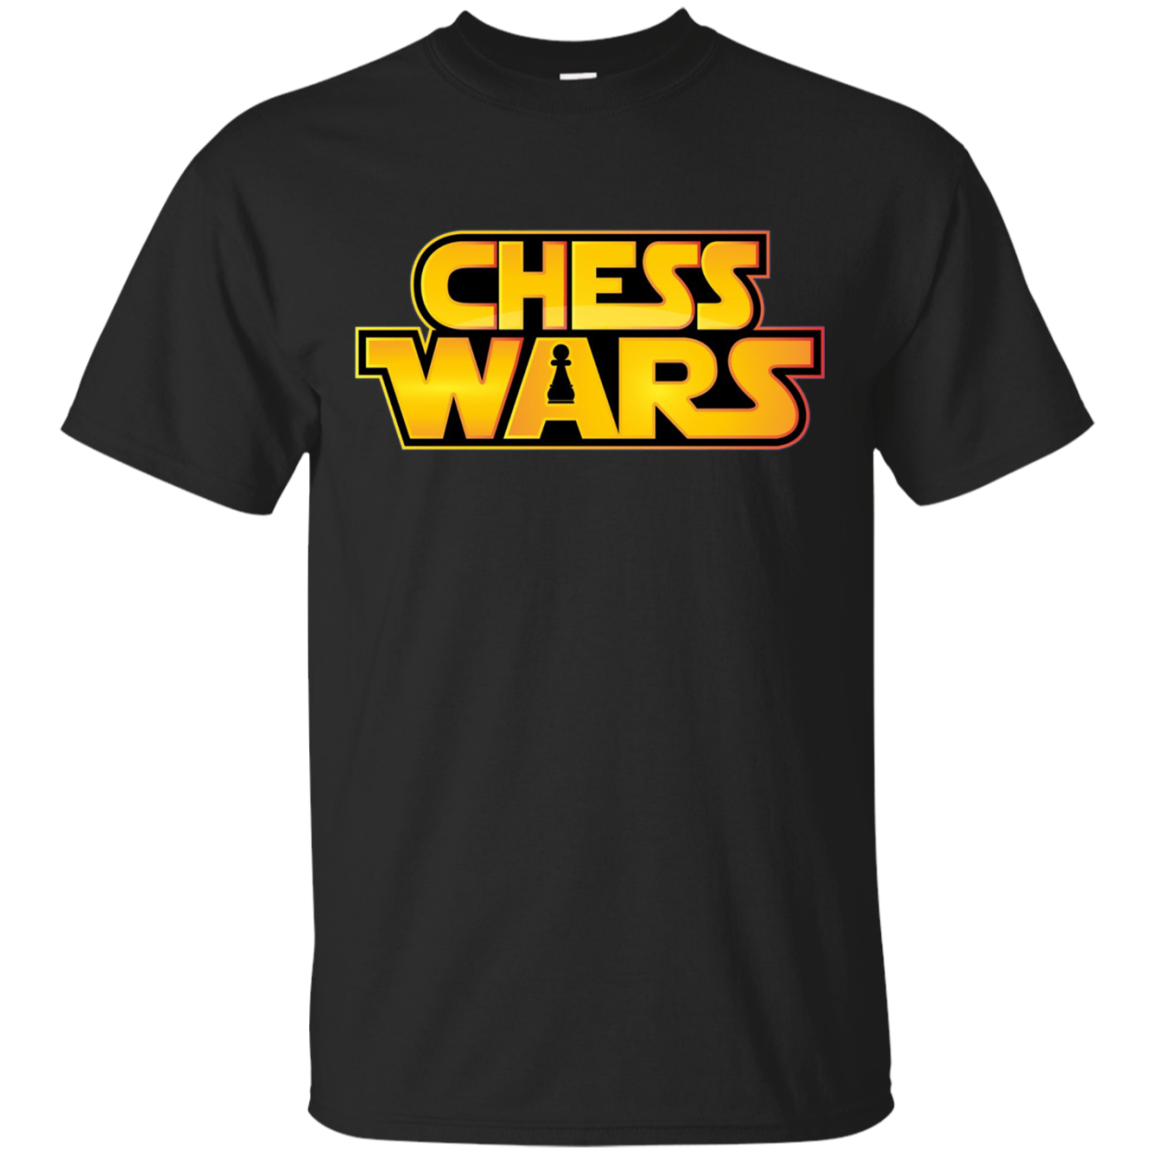 Gift for Chess Player - Chess T Shirt - Chess Wars Pawn